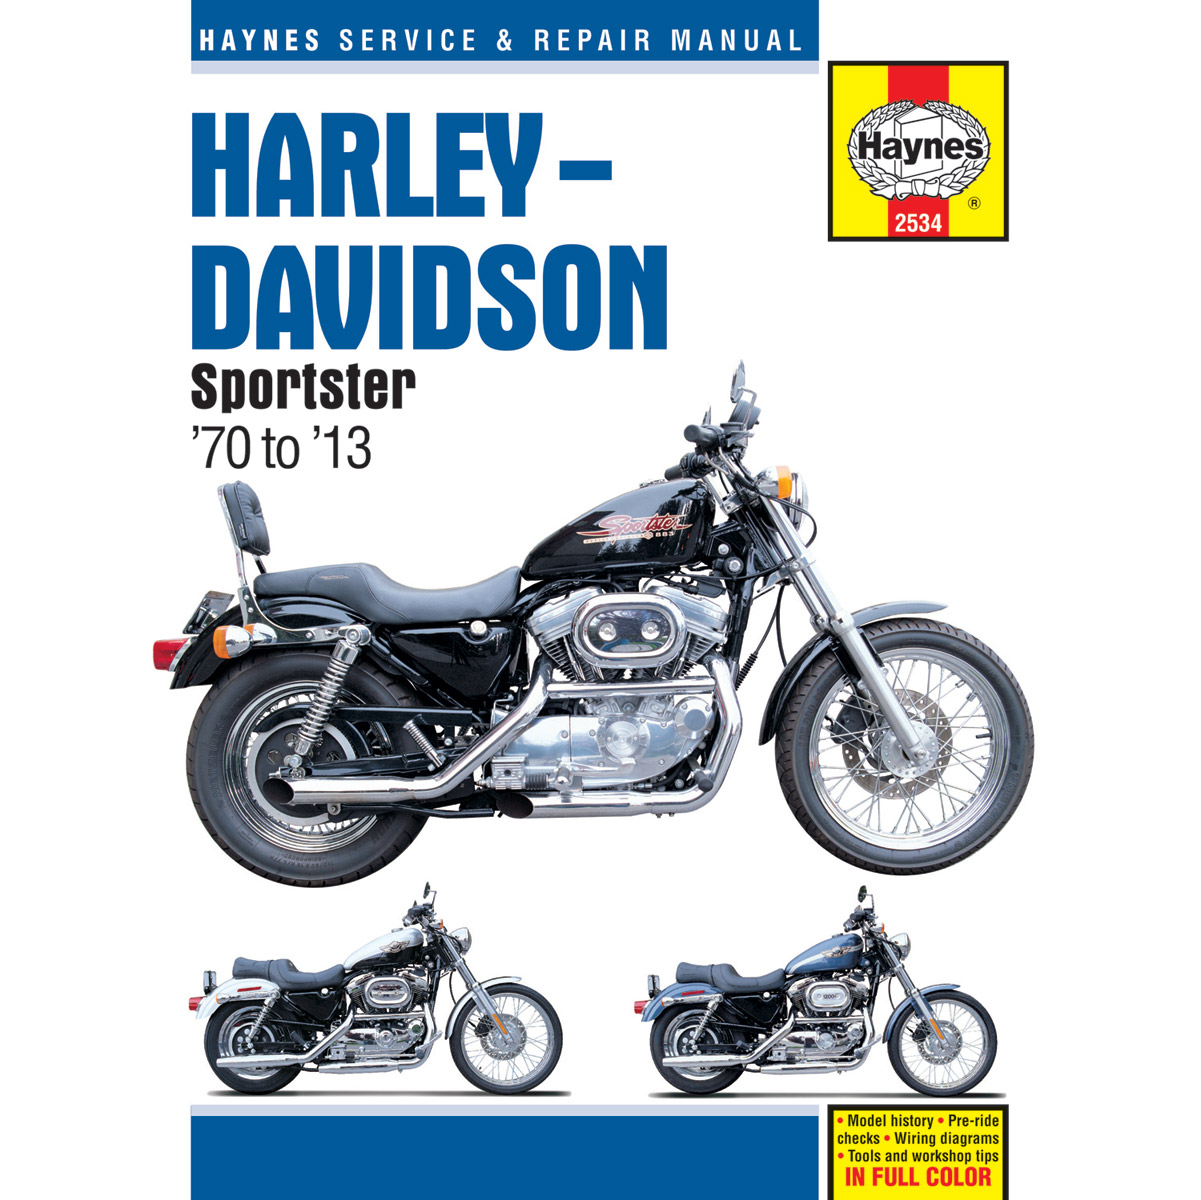 haynes sportster manual 165 041 j p cycles rh jpcycles com 2012 harley sportster service manual 2012 harley davidson sportster 883 owners manual